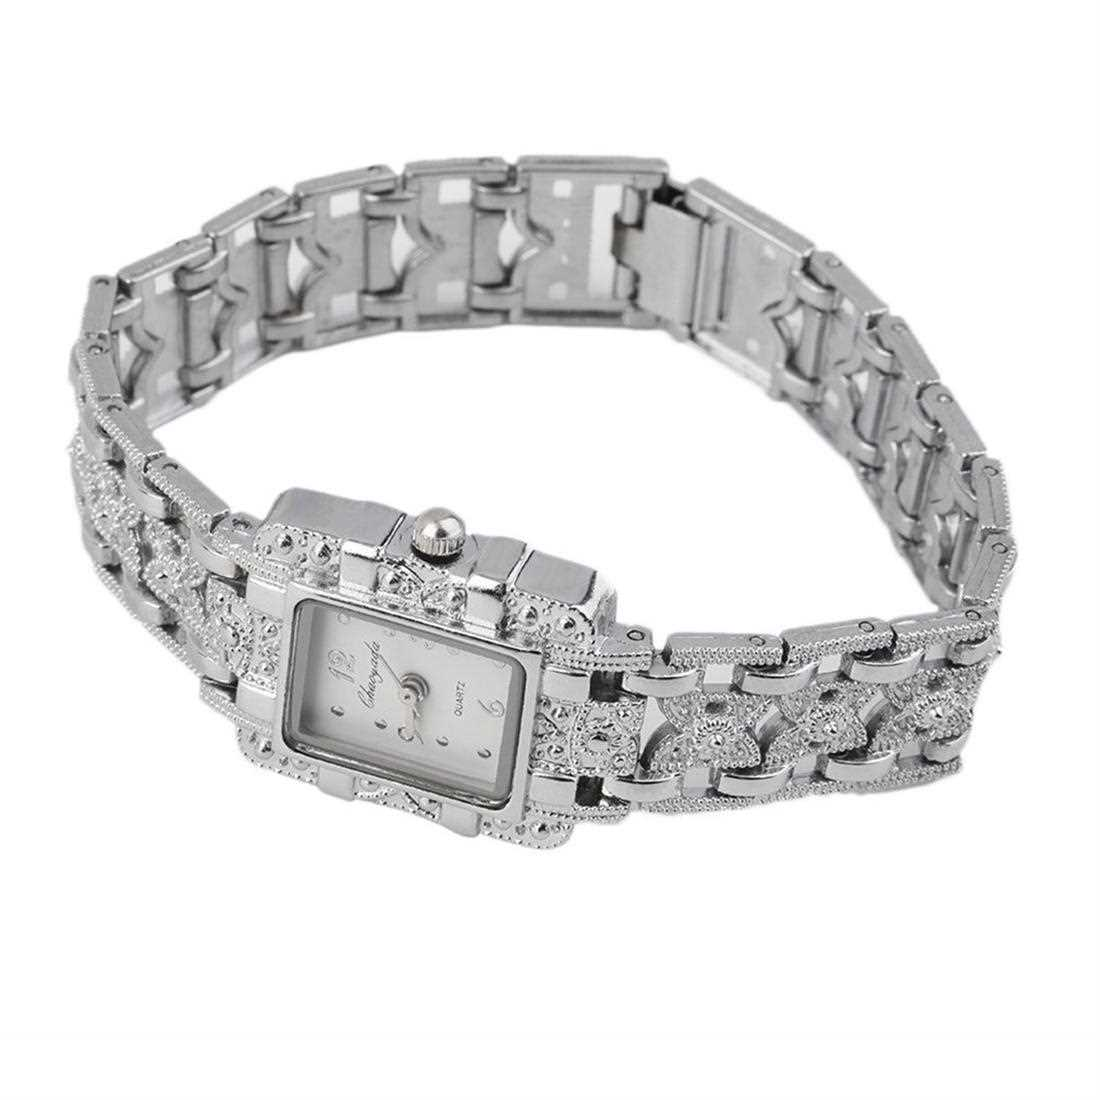 CHAOYADA Luxury Square Ladies Watch ( White )